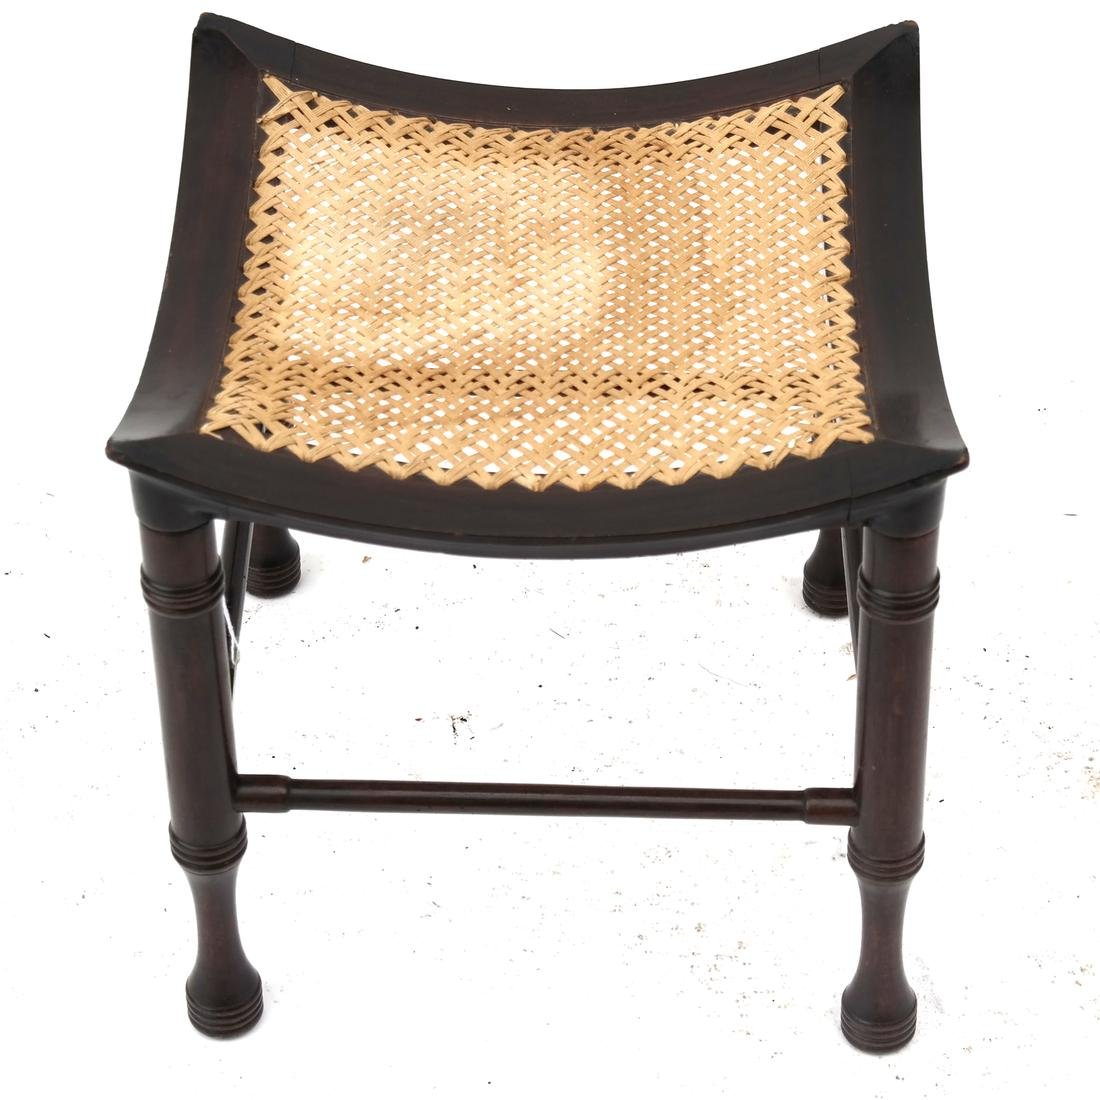 Rope Seat Thebes Stool  / Bench by Liberty